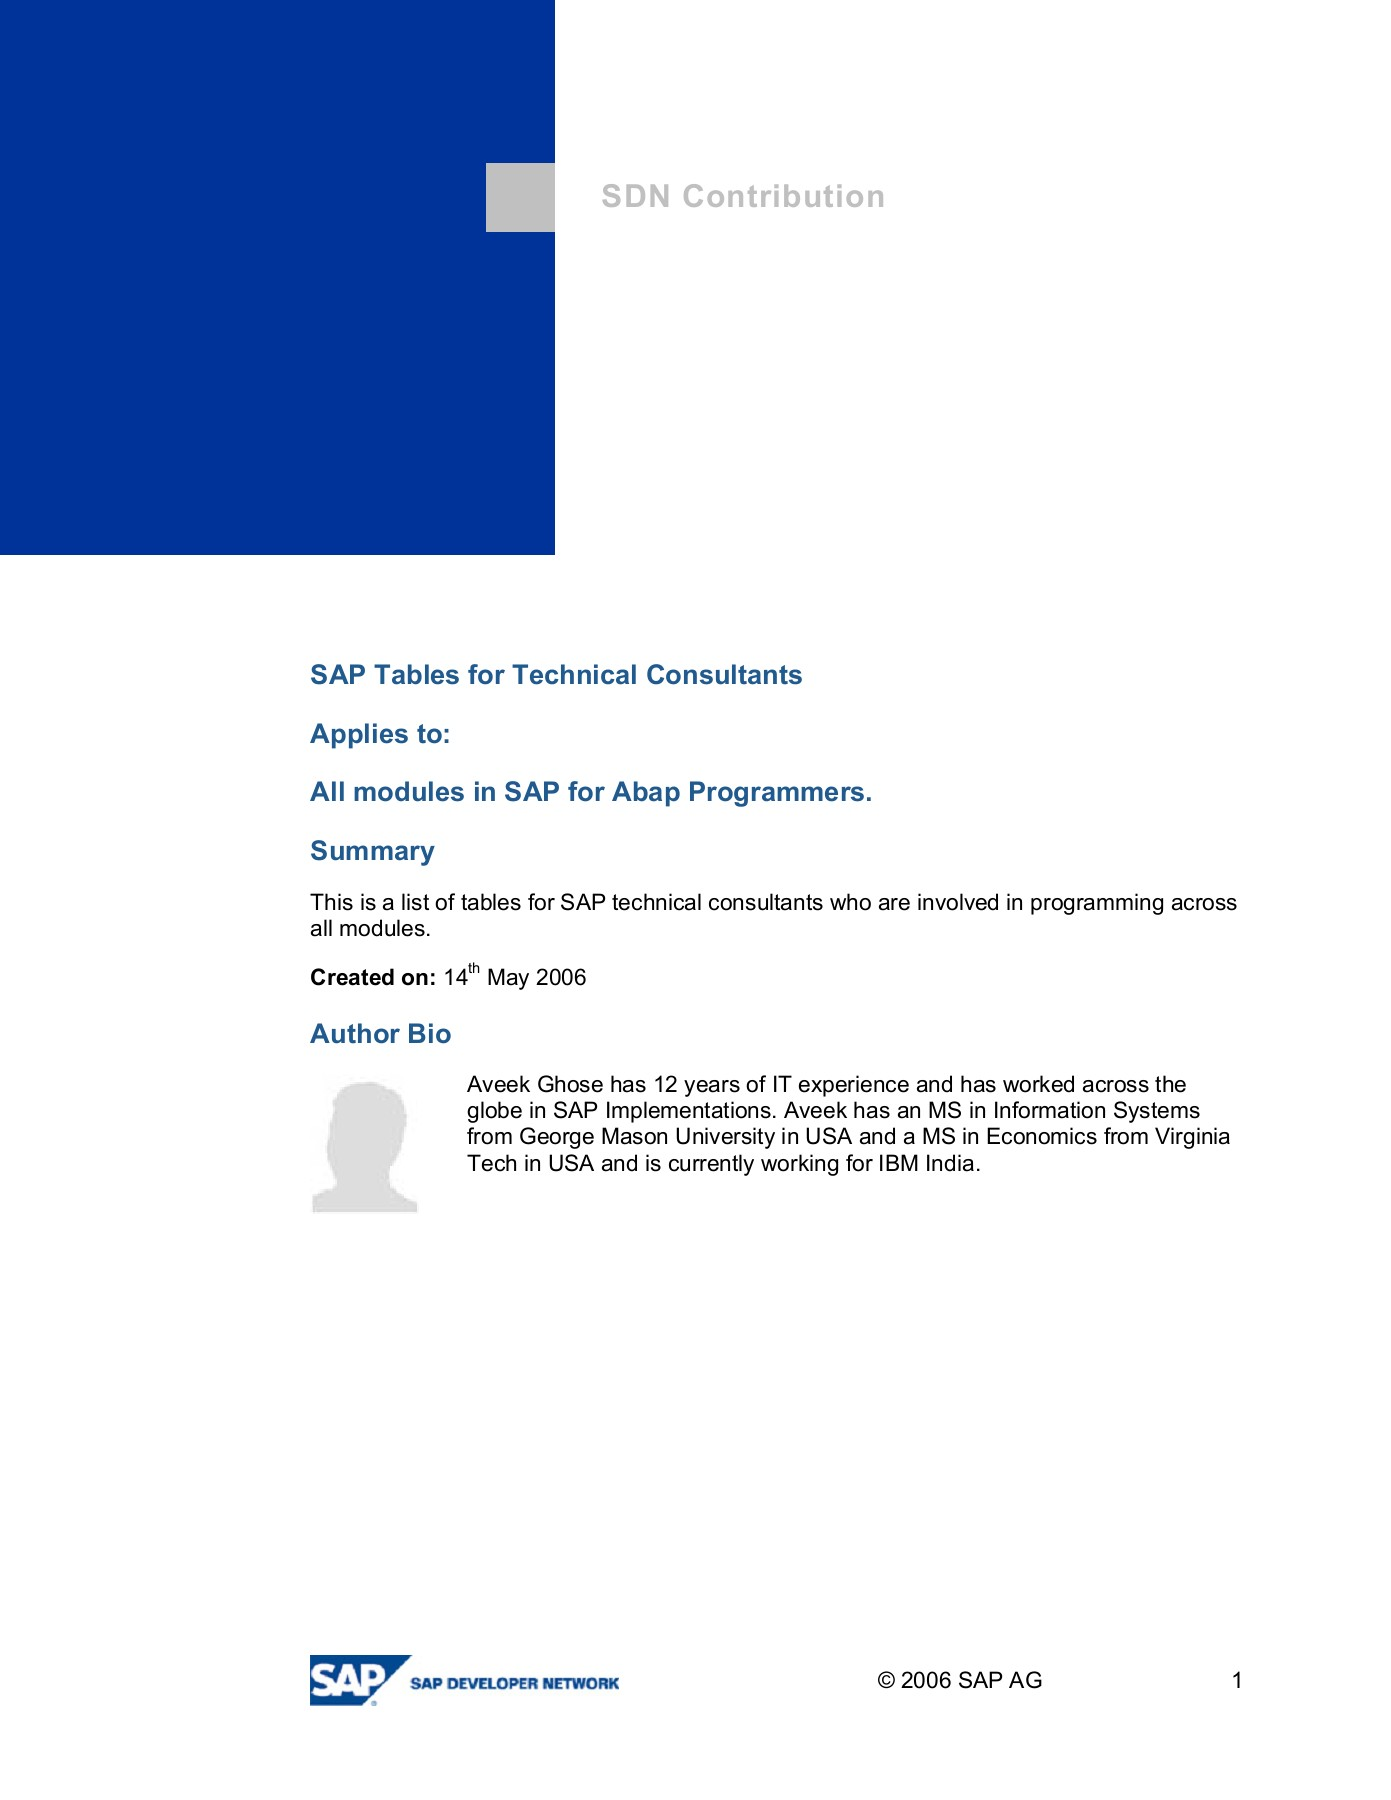 SAP Tables for Technical Consultants Applies to: All